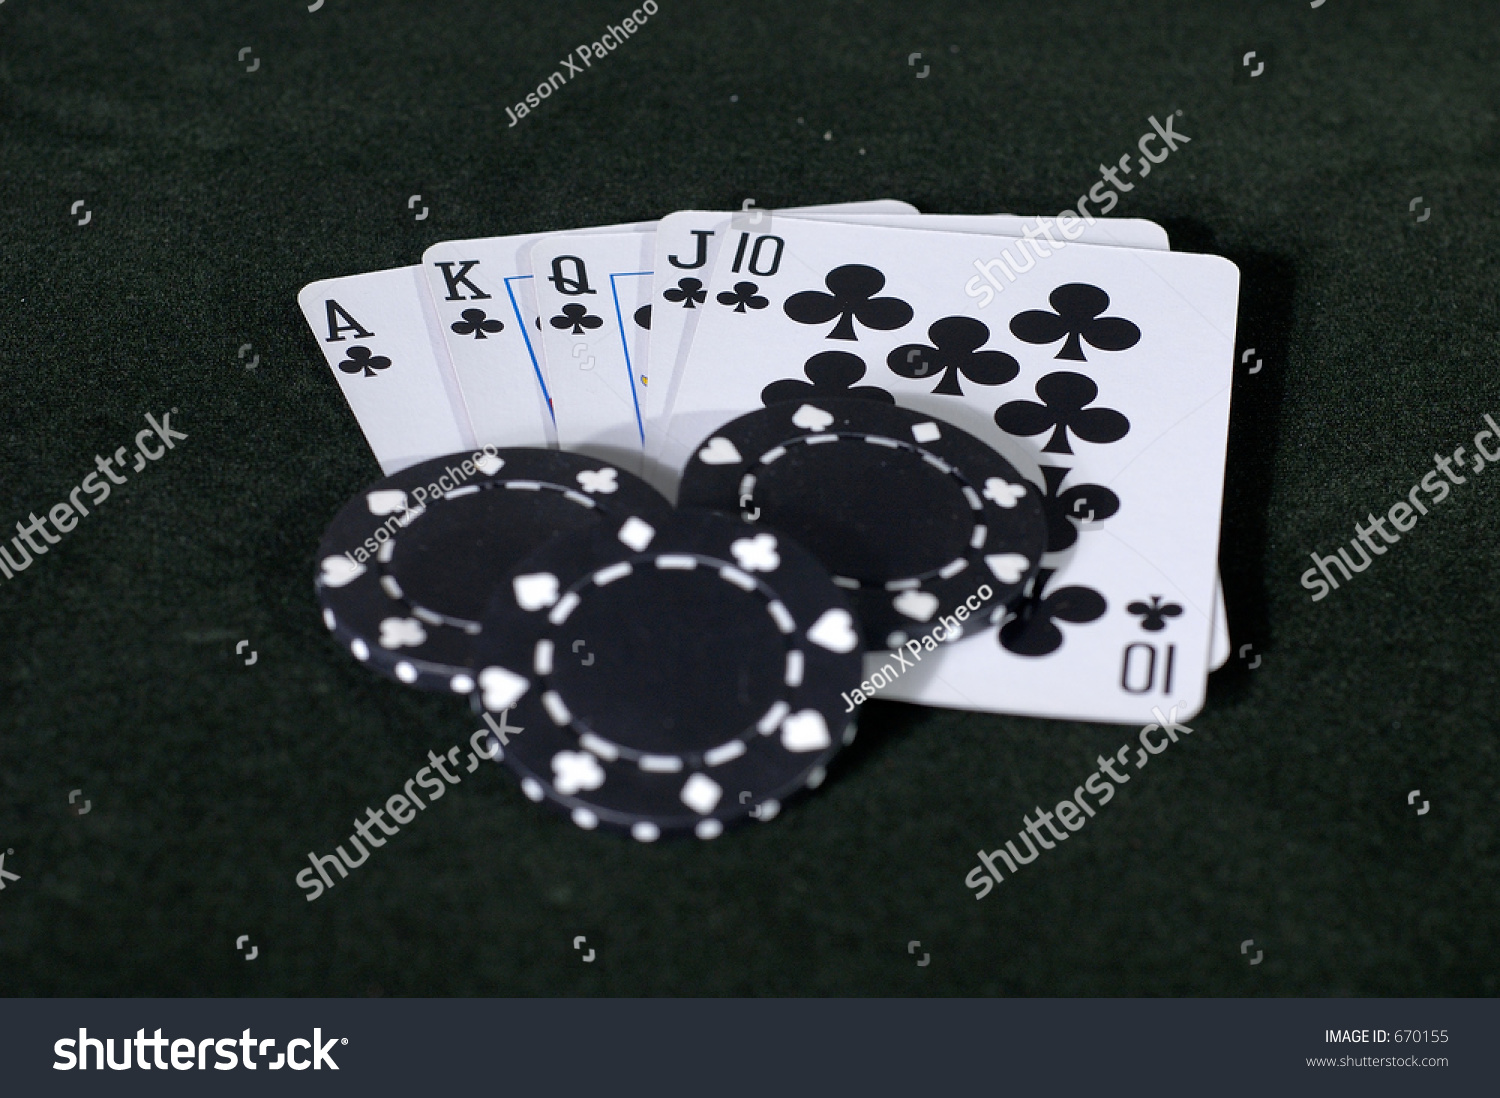 What is a black flush in poker